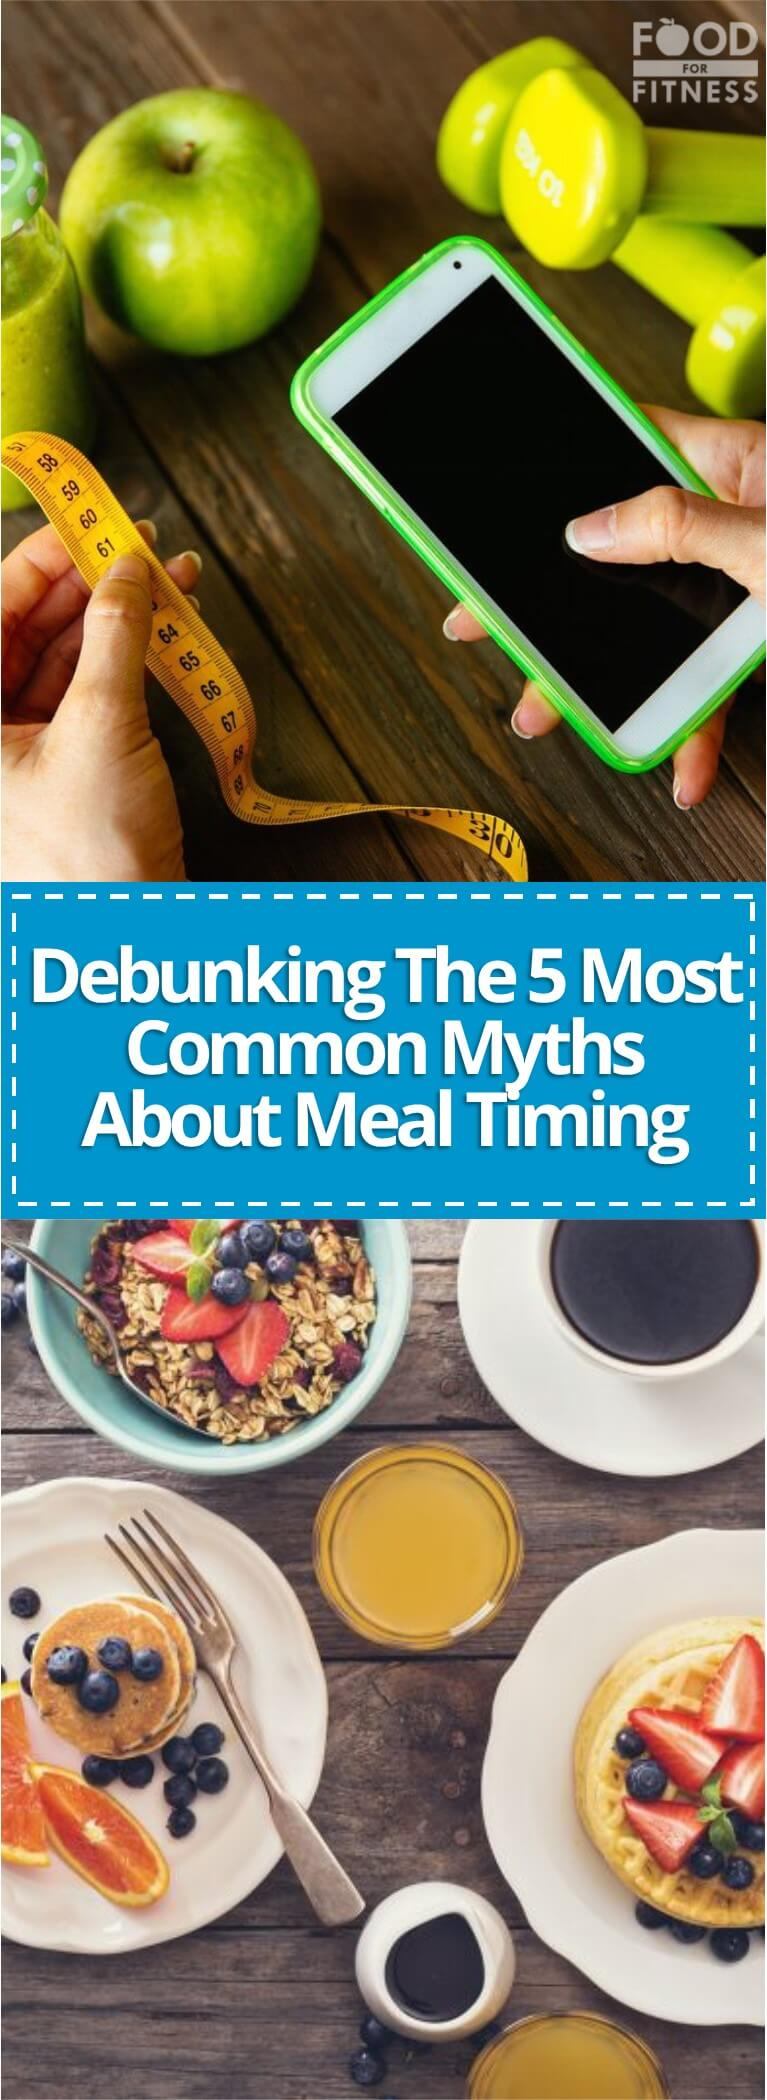 Confusing meal timing myths can make healthy eating a struggle!